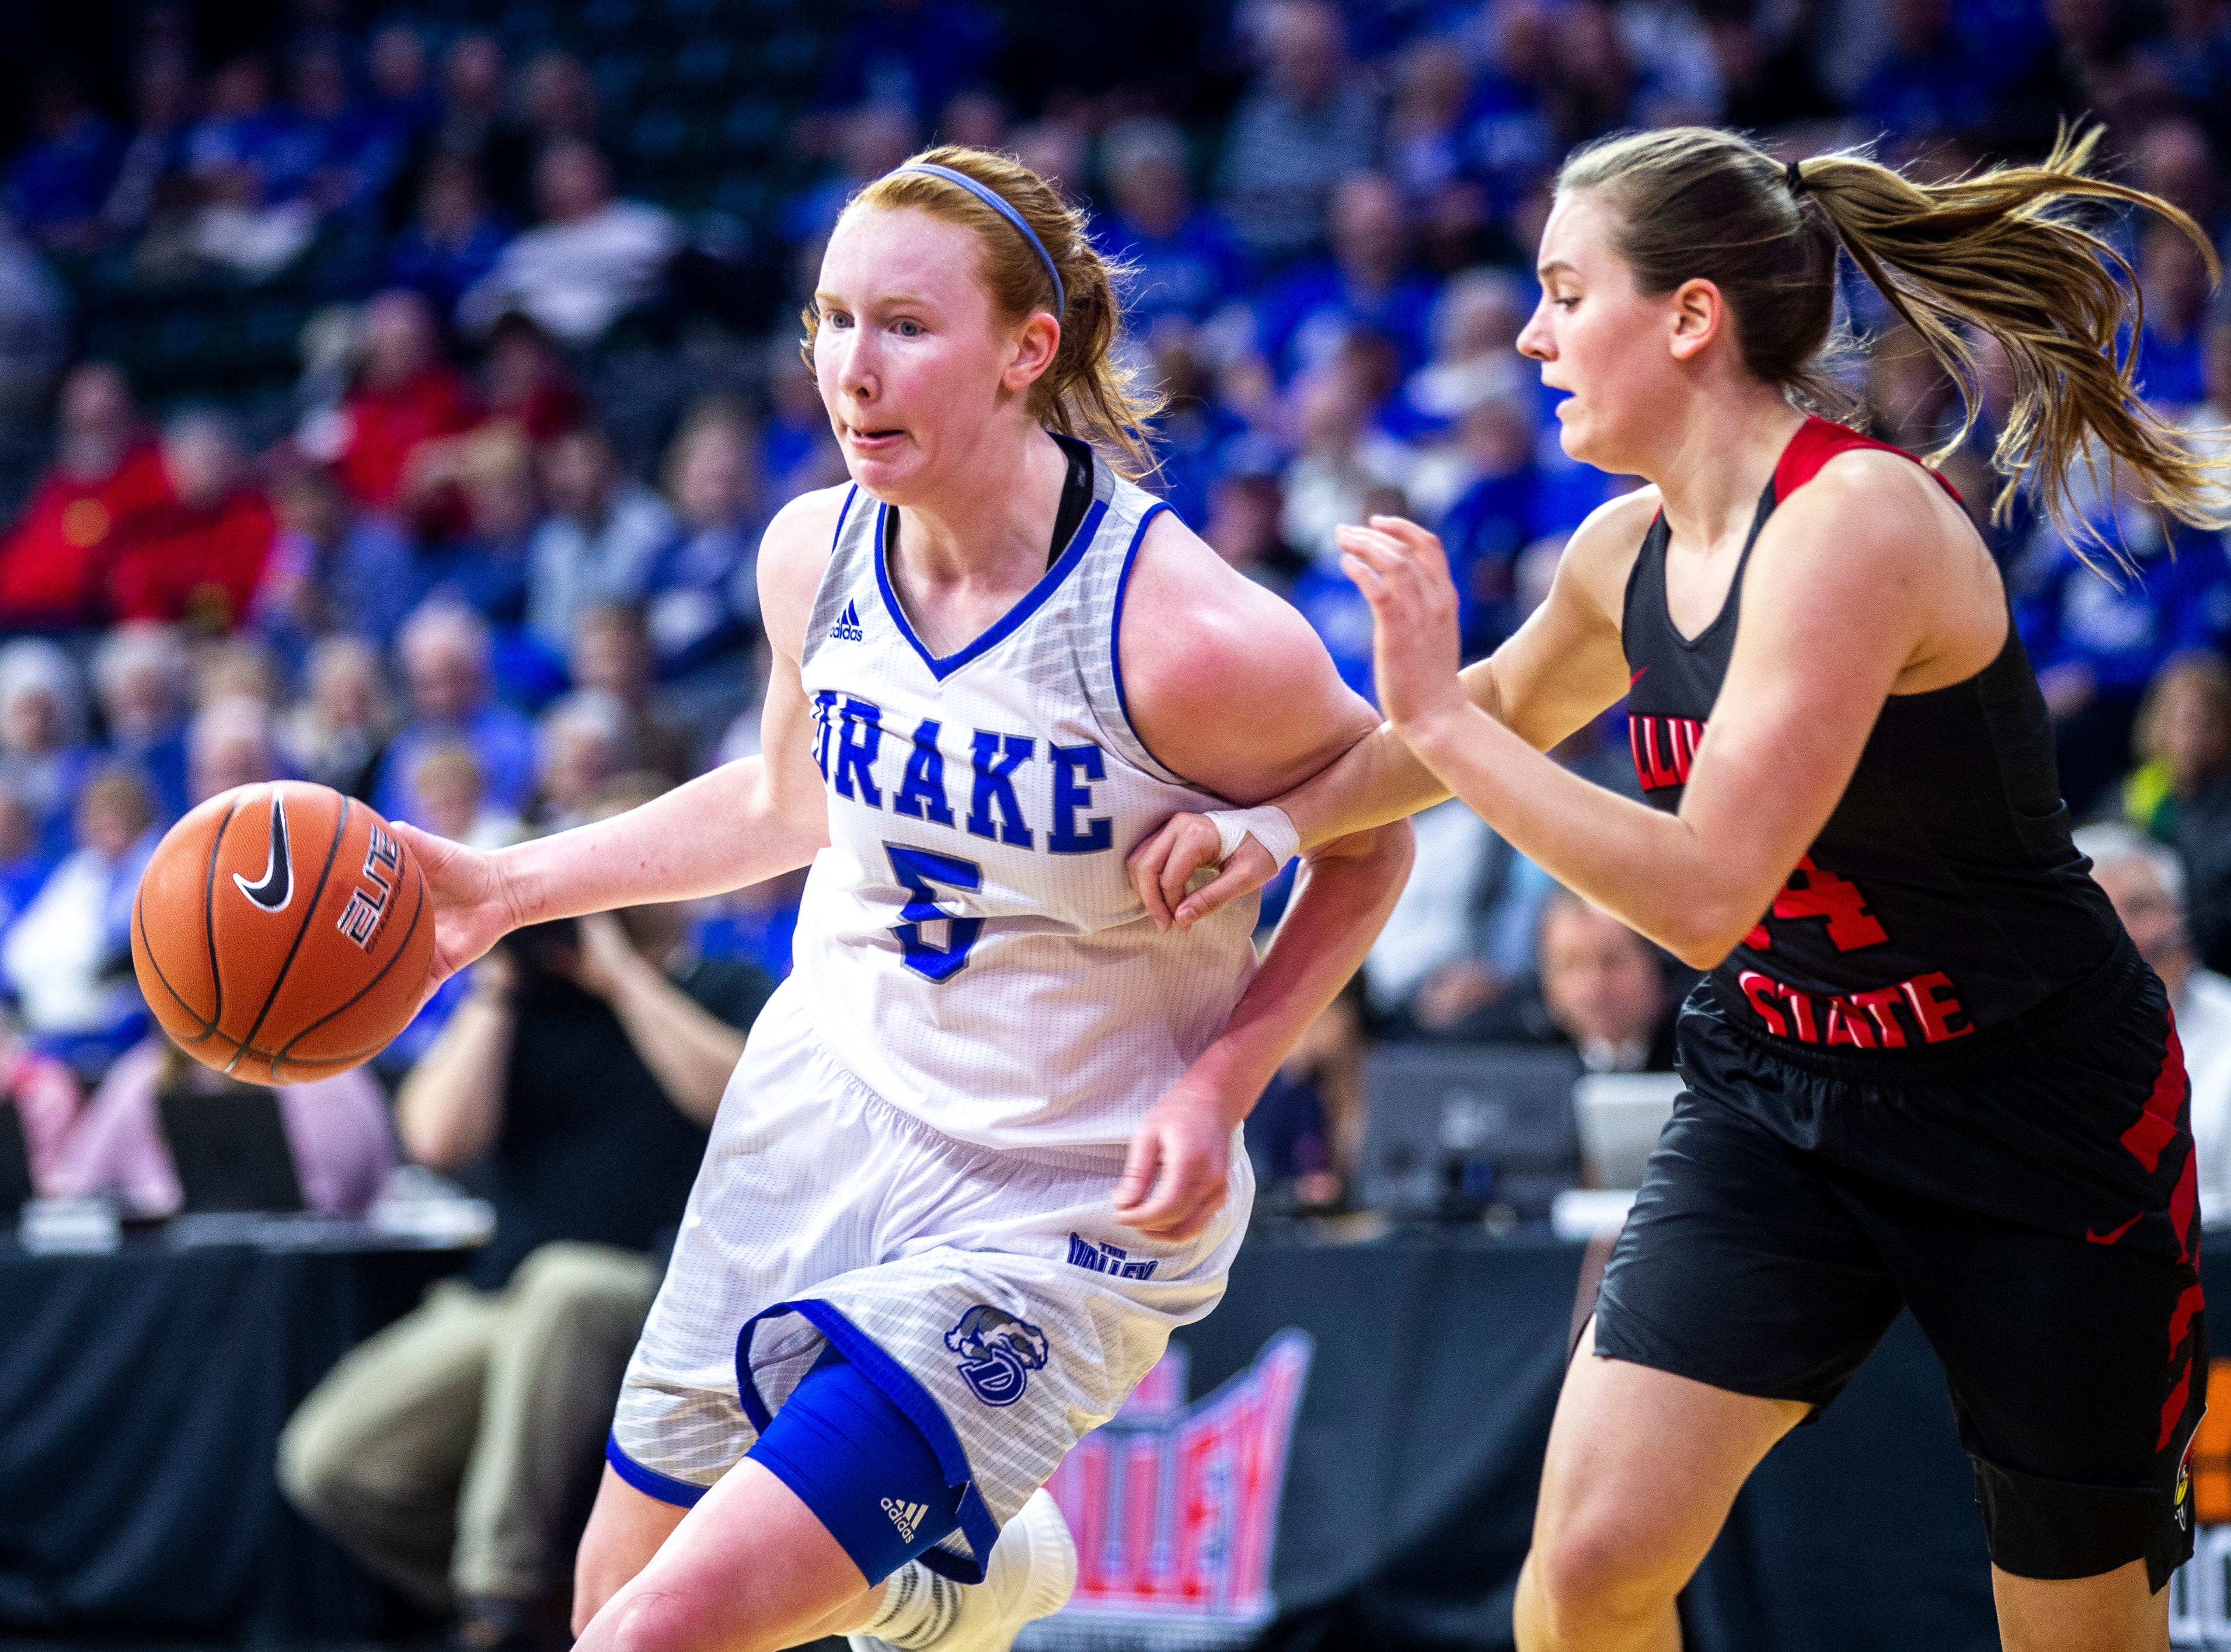 Drake guard Becca Hittner (5) drives to the basket against Illinois State guard Paige Saylor (14) during a NCAA Missouri Valley Conference women's basketball semi final tournament game on Saturday, March 16, 2019, the TaxSlayer Center in Moline, Illinois.